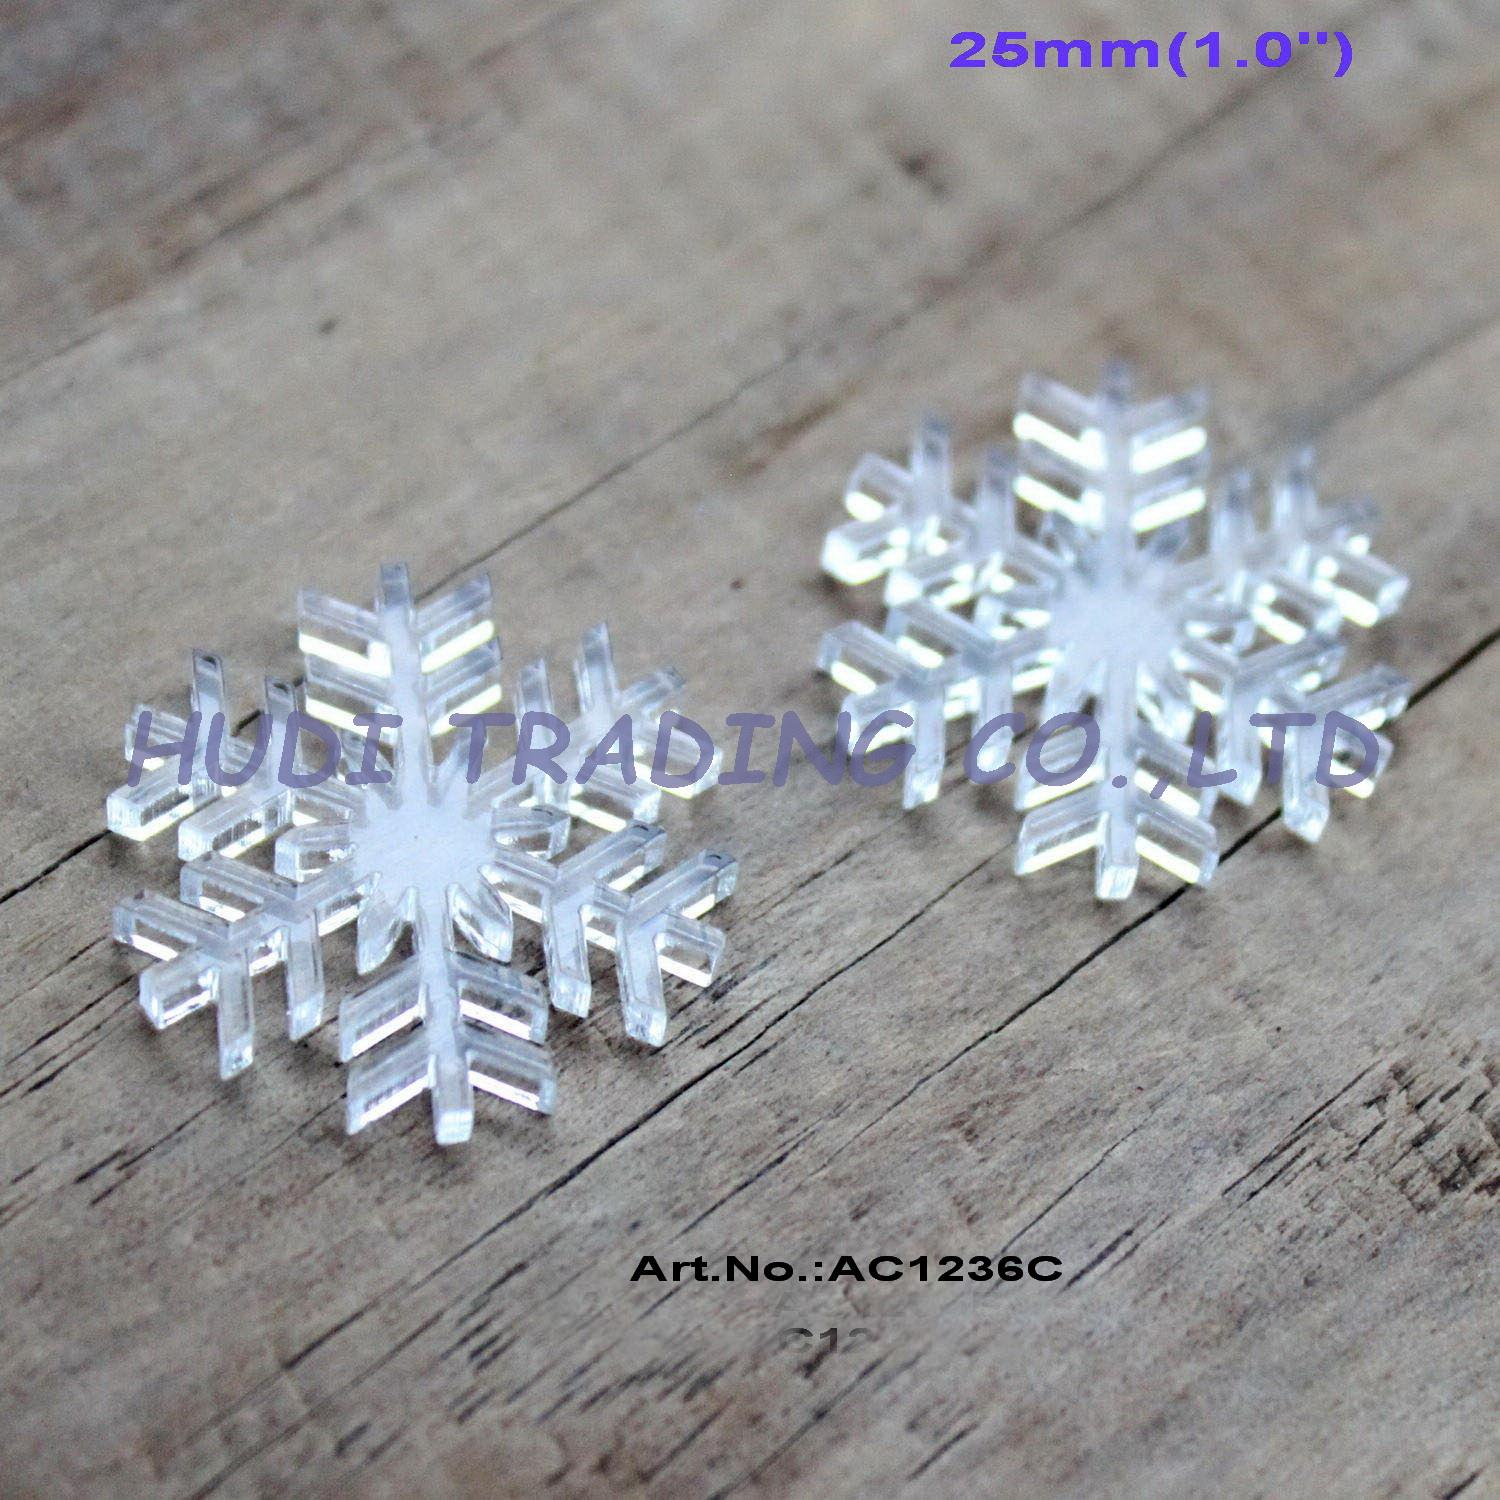 Acrylic clear ornaments -  60pcs Lot 25mm Assorted Clear Acrylic Snowflakes Christmas Ornaments 1 Ac1236c